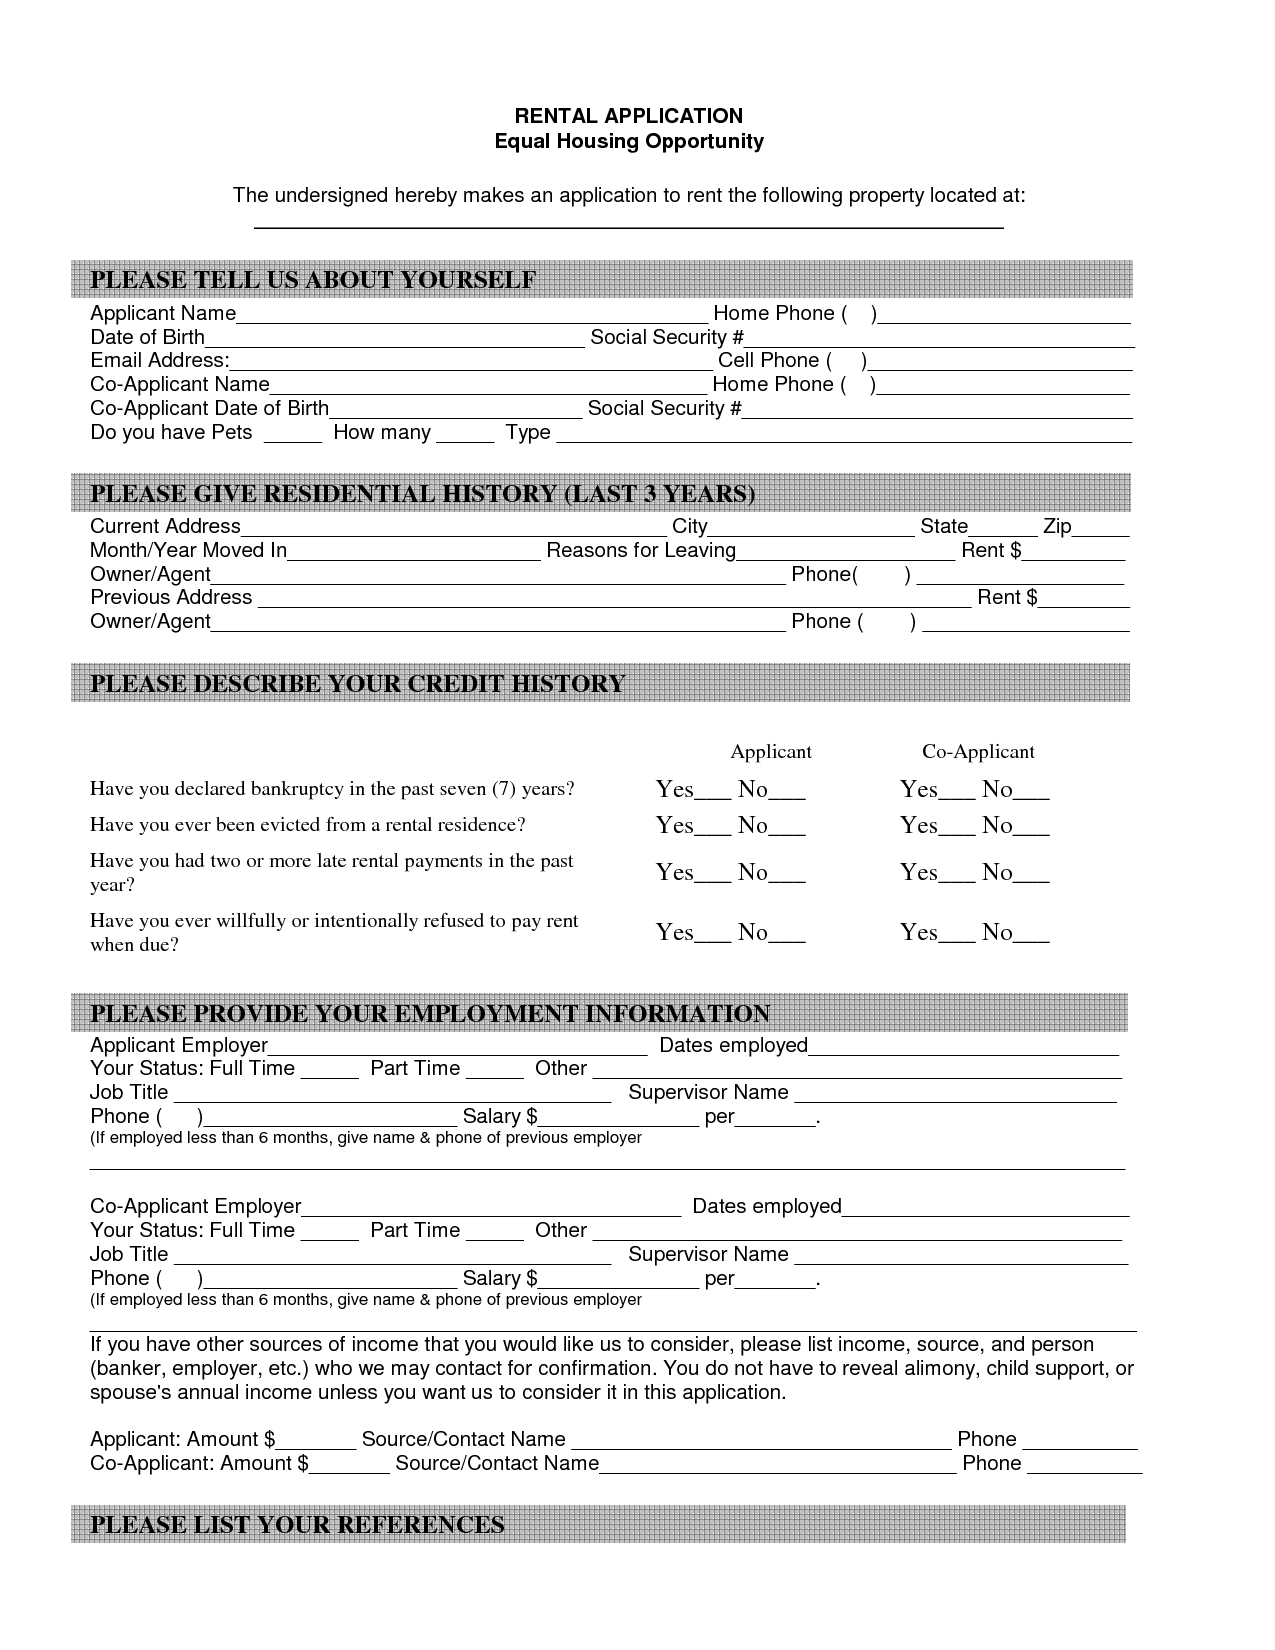 Property Blank Lease Agreement Form Free | Property Rentals Direct - Free Printable House Rental Application Form